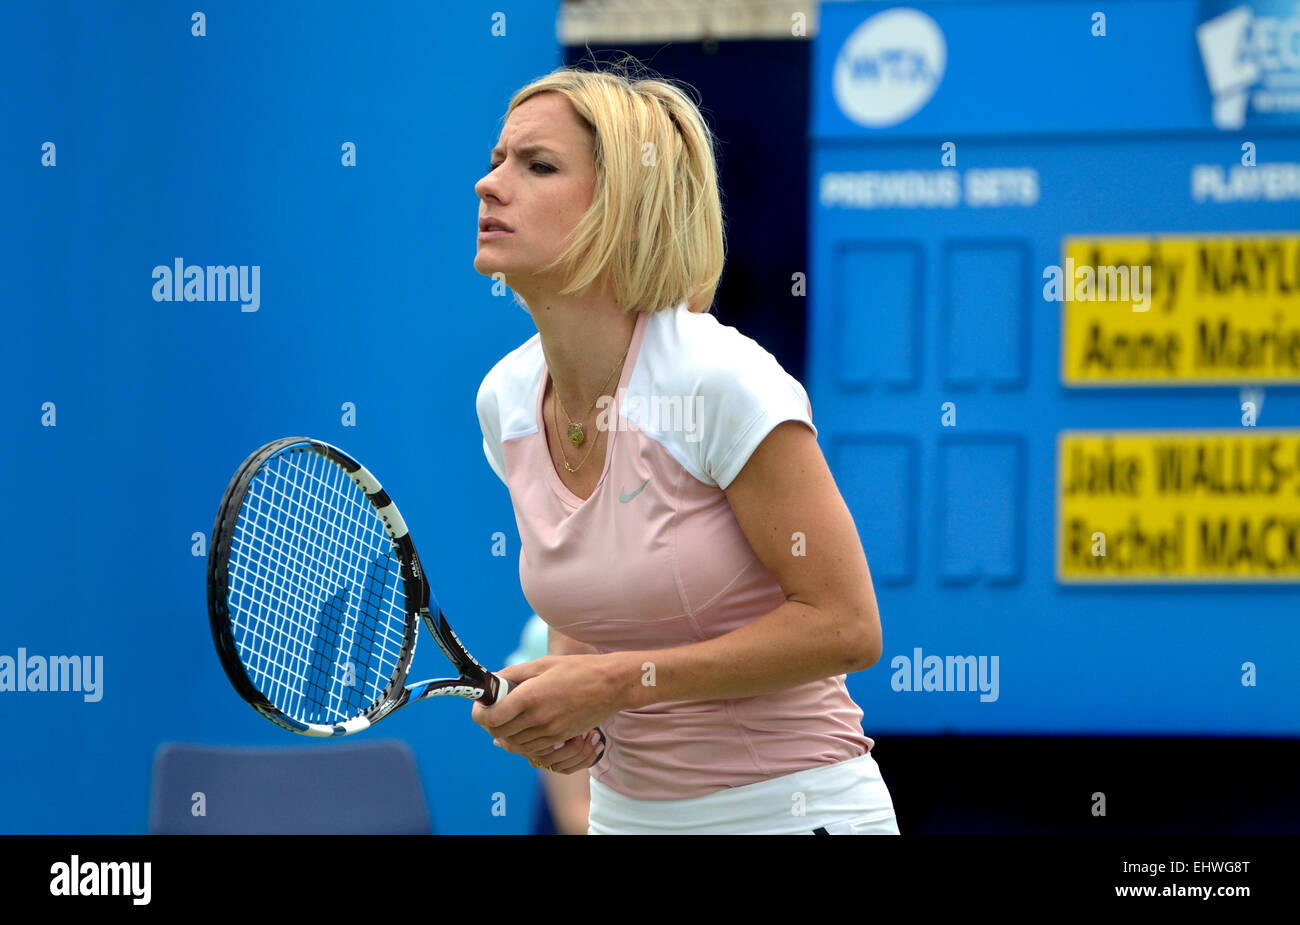 Rachel Mackley (BBC South East weather presenter) playing in a special media match at Devonshire Park, Eastbourne, - Stock Image